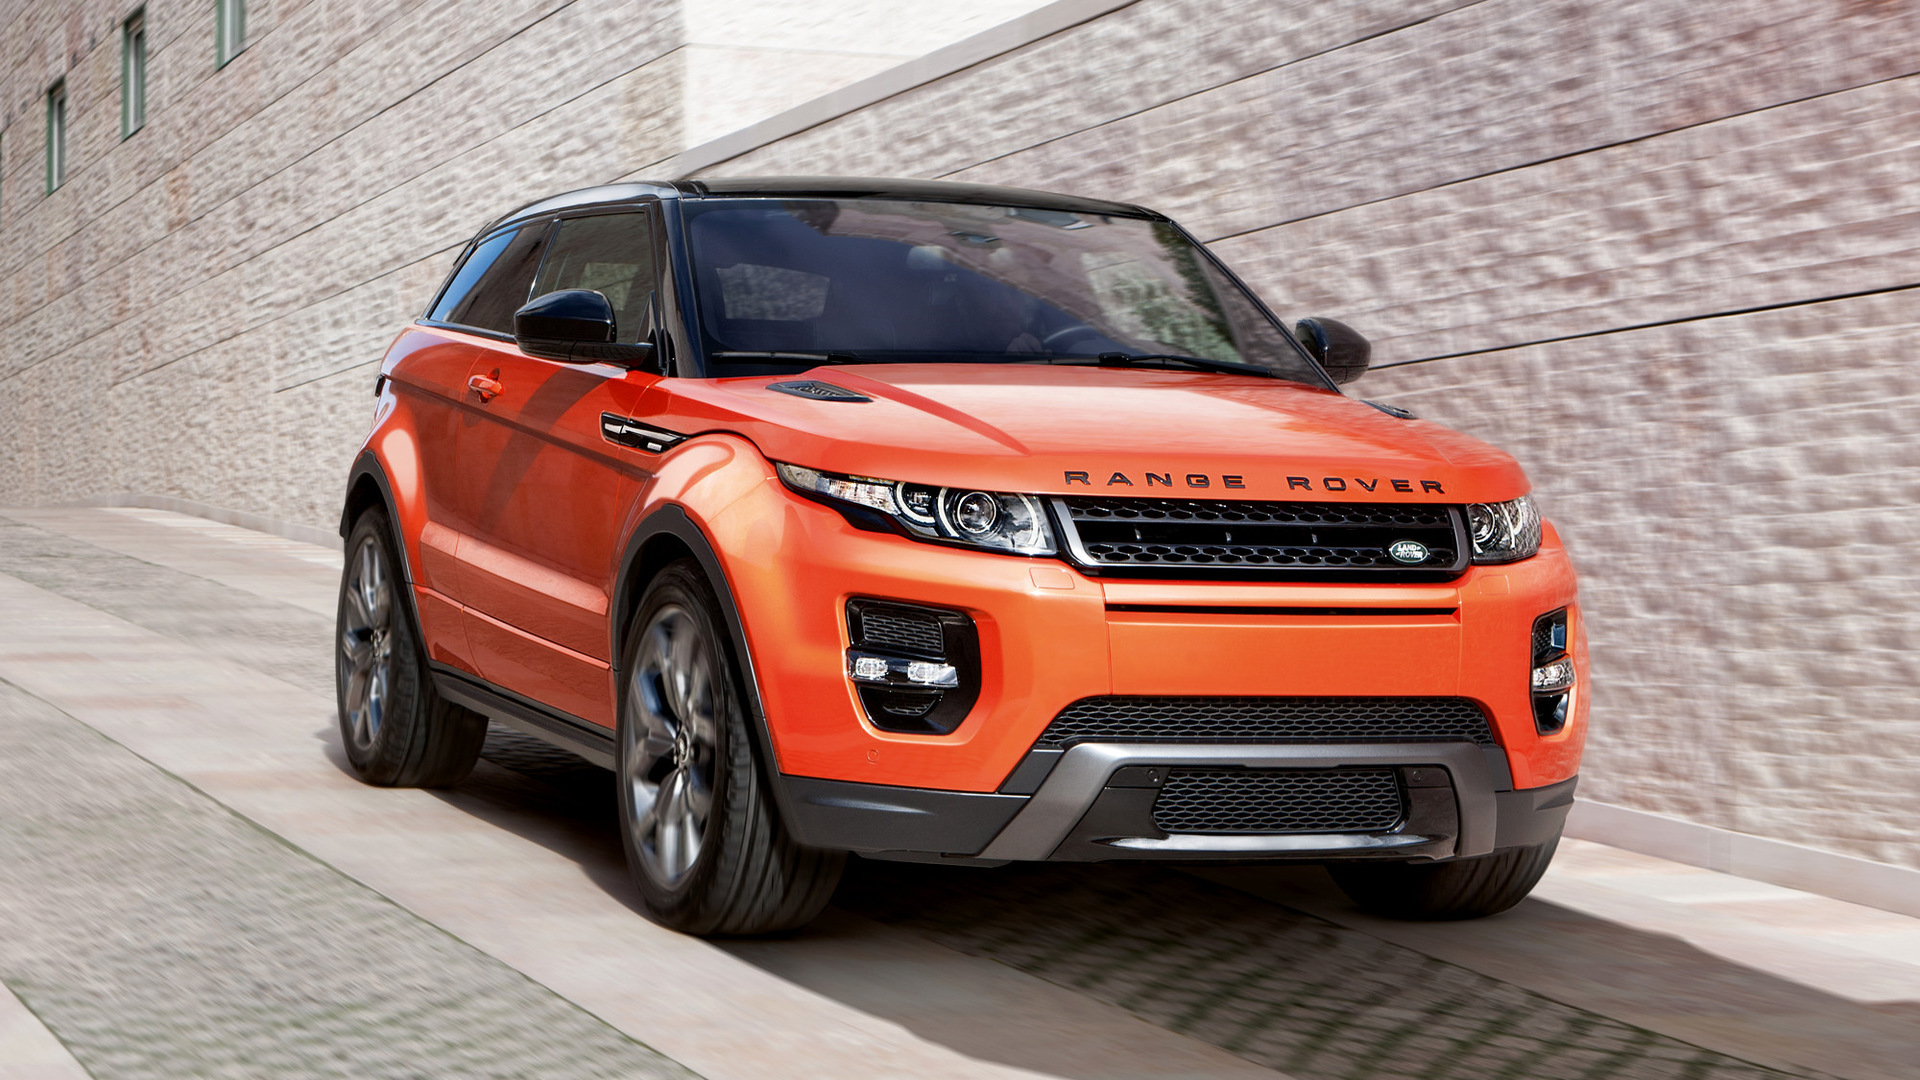 Range Rover Evoque Coupe Autobiography Dynamic 2014